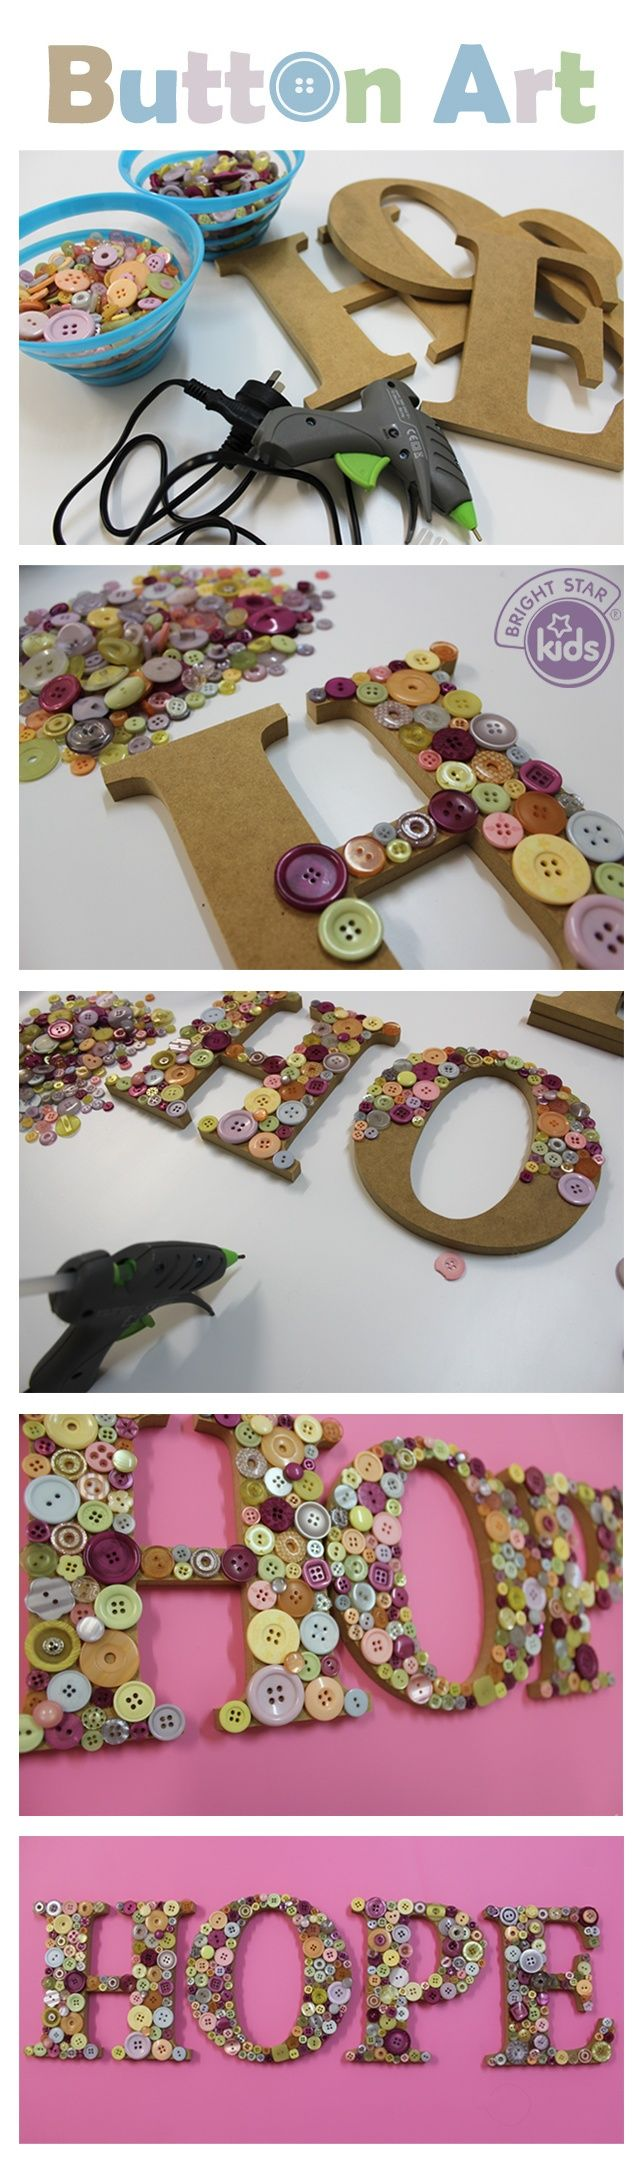 Button Art – Perfect for birthday party decoration. Easy To Make and Extremely Creative Button Crafts Tutorials.